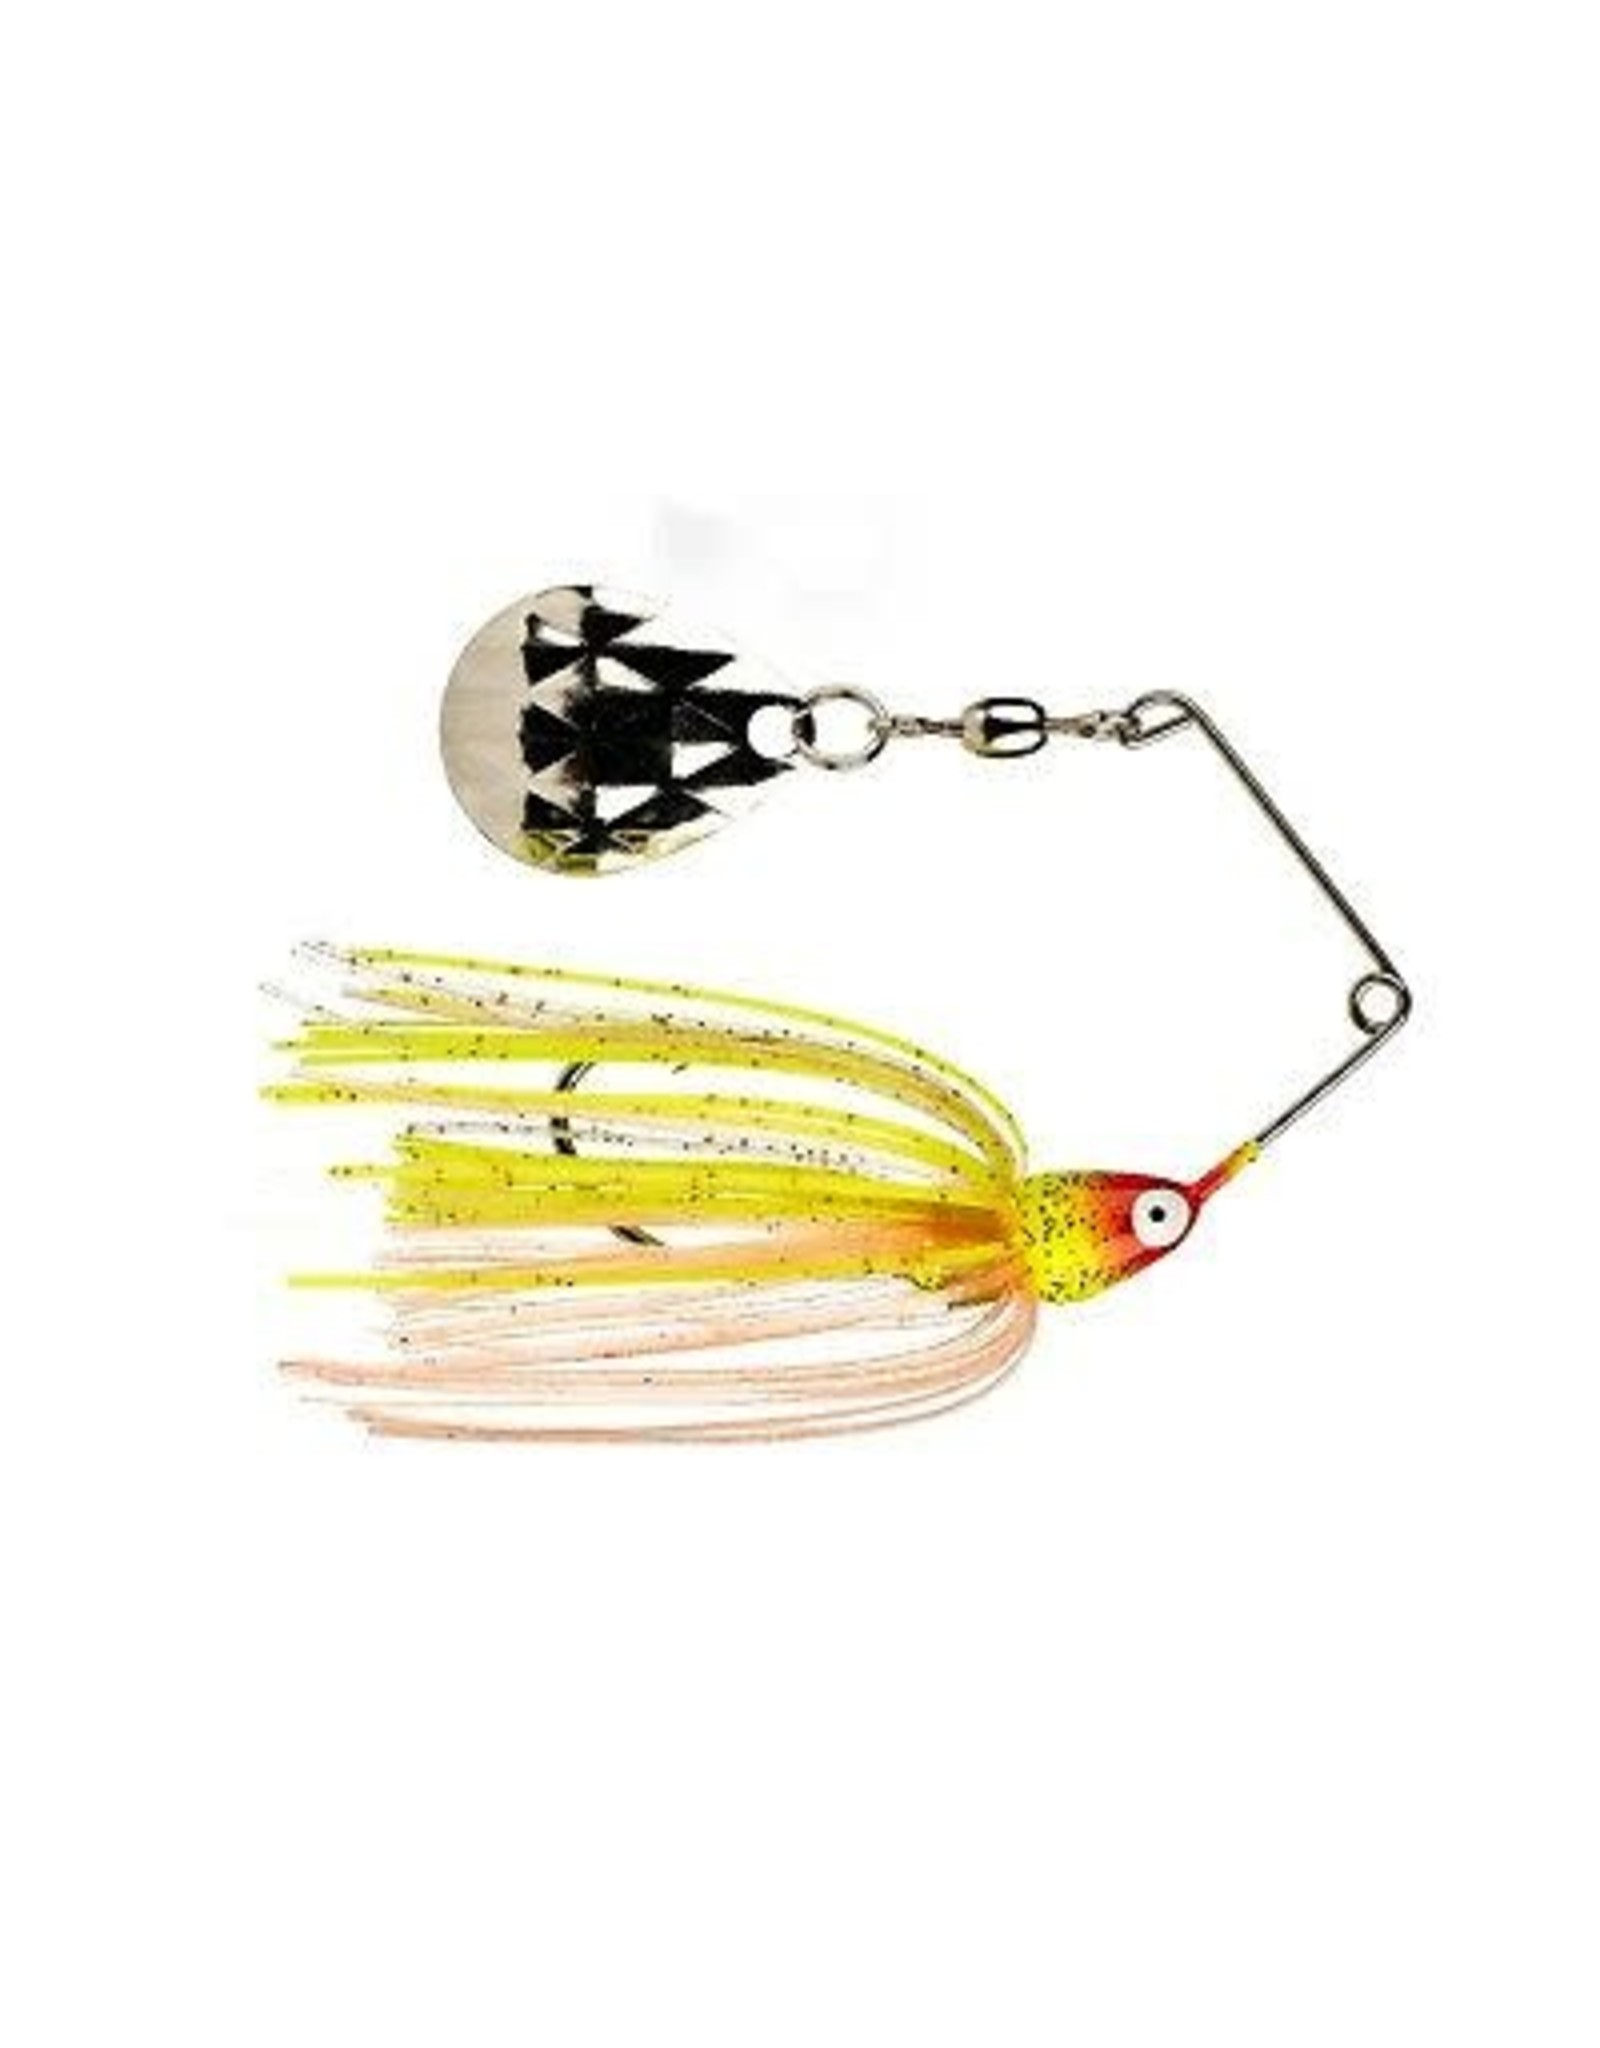 Strike King Strike King Spinner Bait - MK-112G 1/8 Oz.